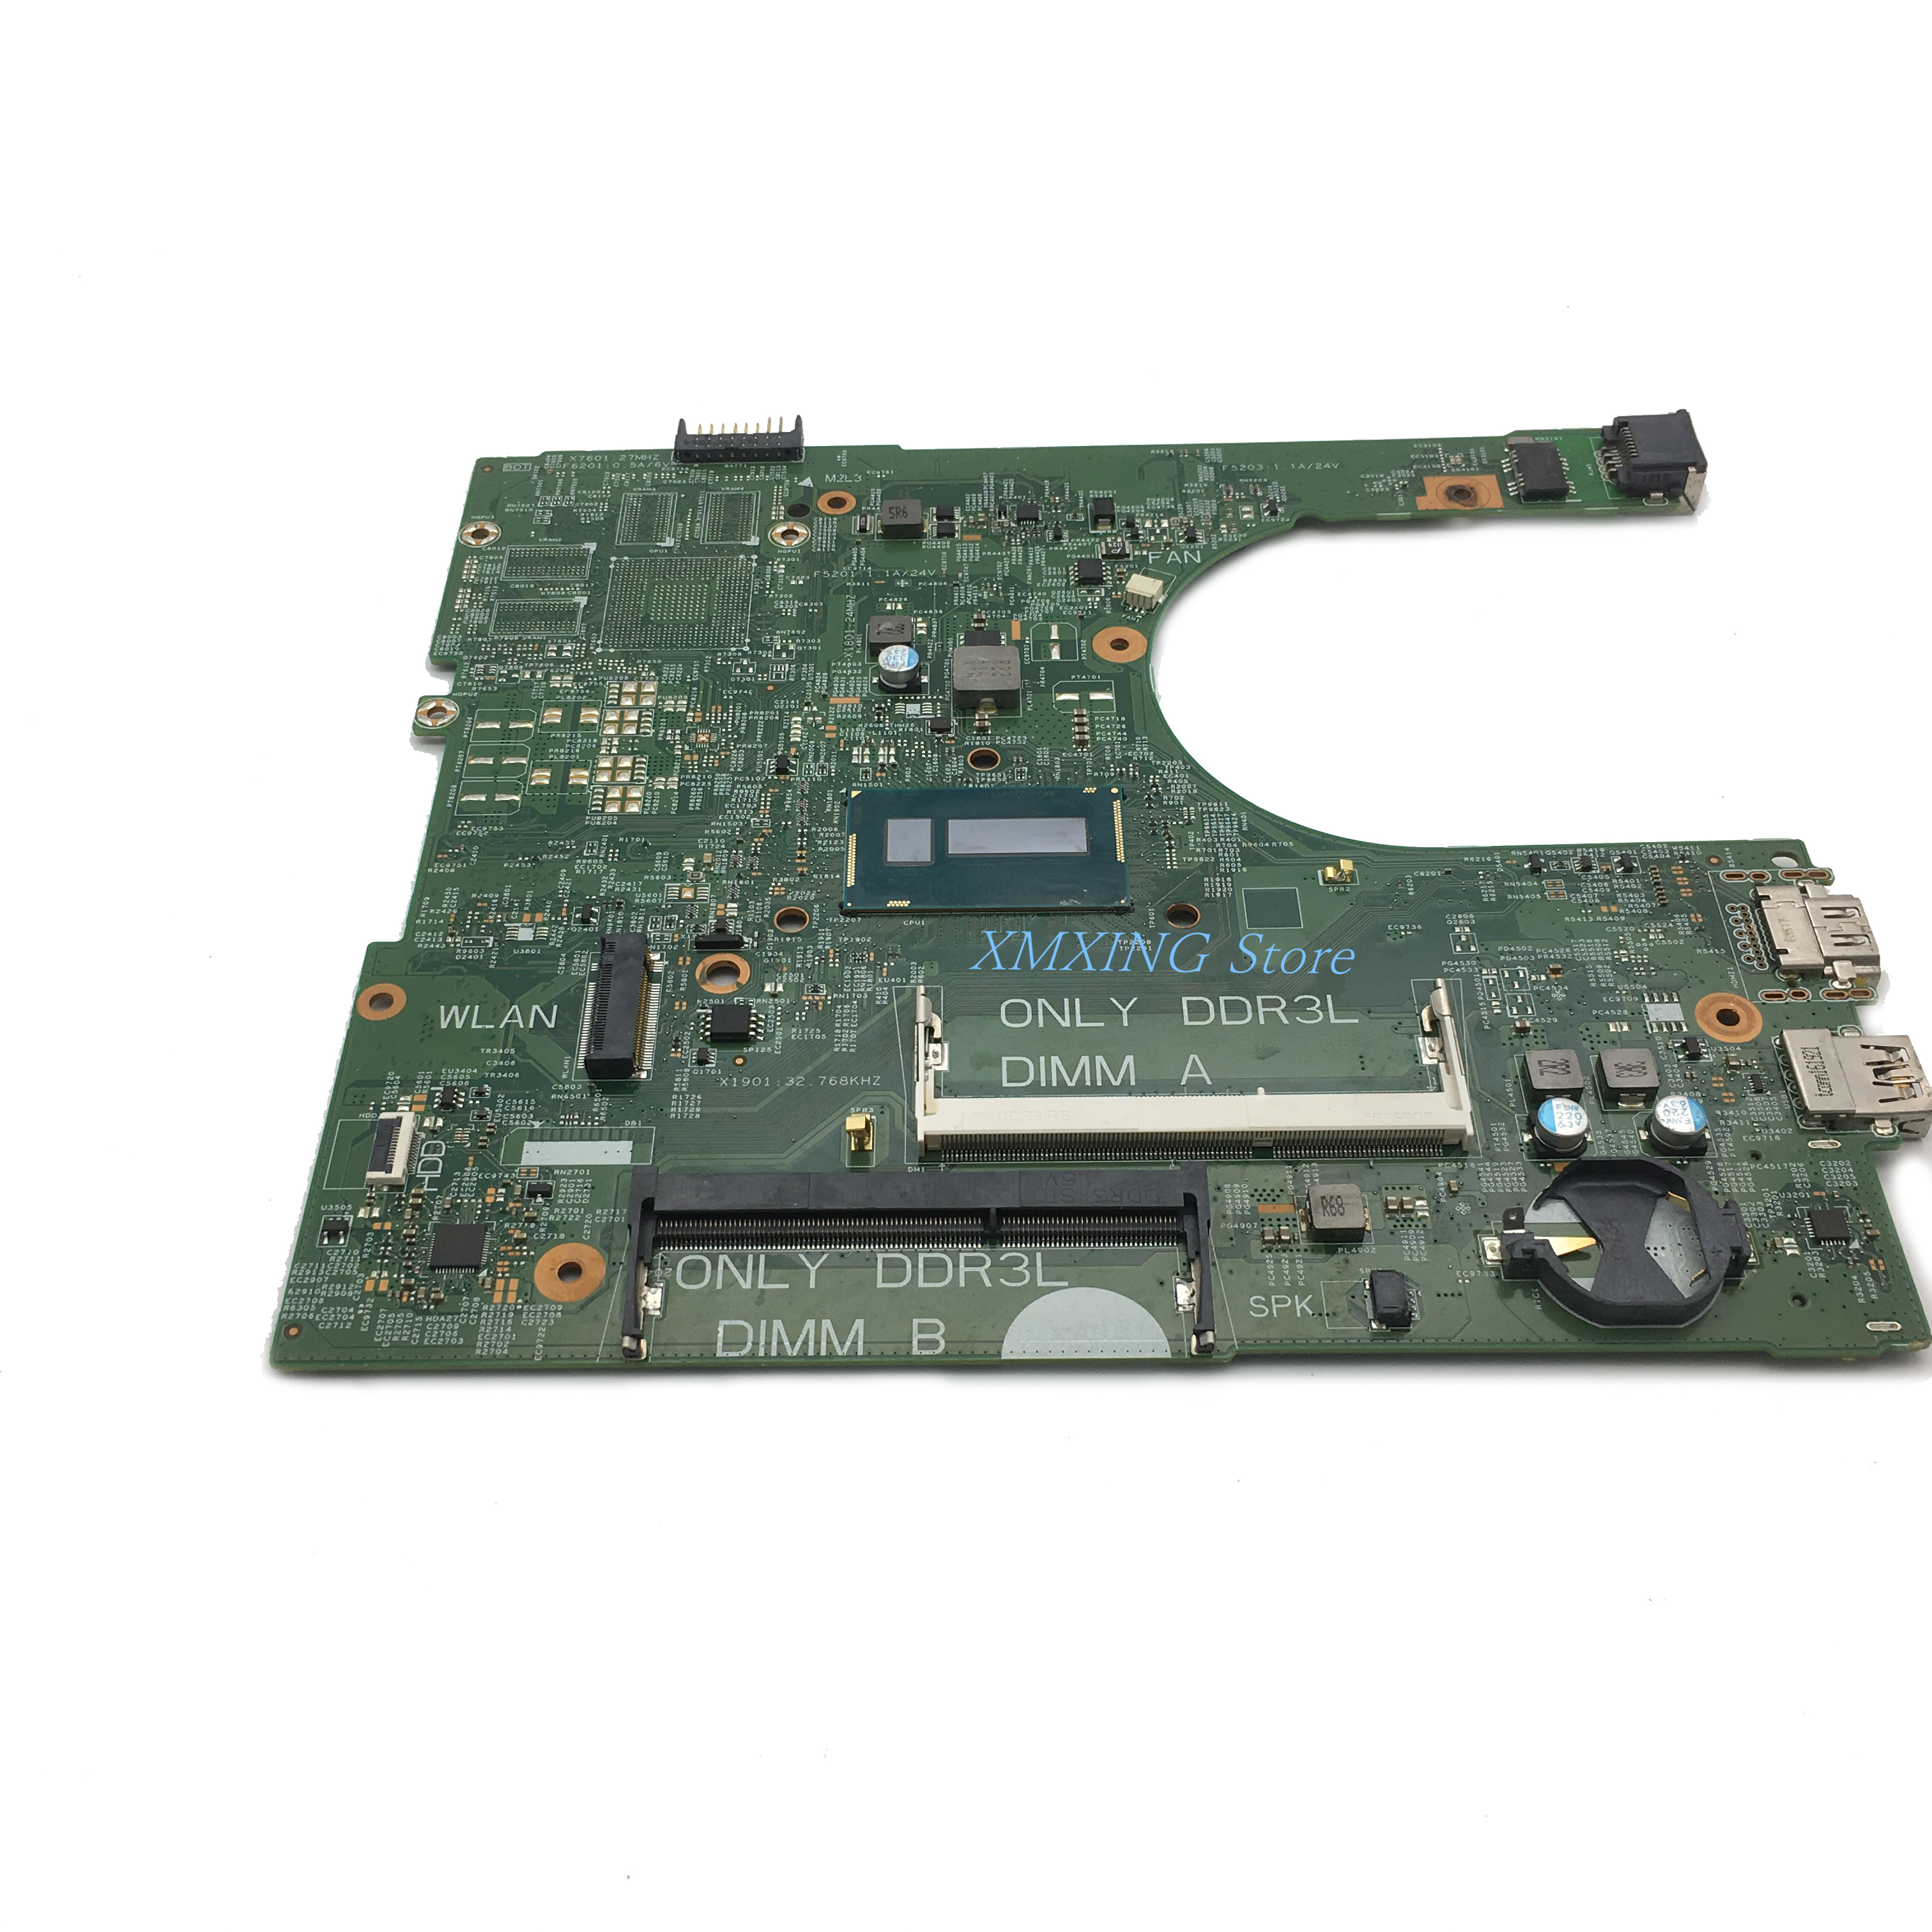 FULCOL For DELL INSPIRON CPU I3 3458 3558 Laptop Motherboard CN-0MY4NH CN-0MNGP8 0MNGP8 0MY4NH MY4NH 14216-1 Tested 100% work 4